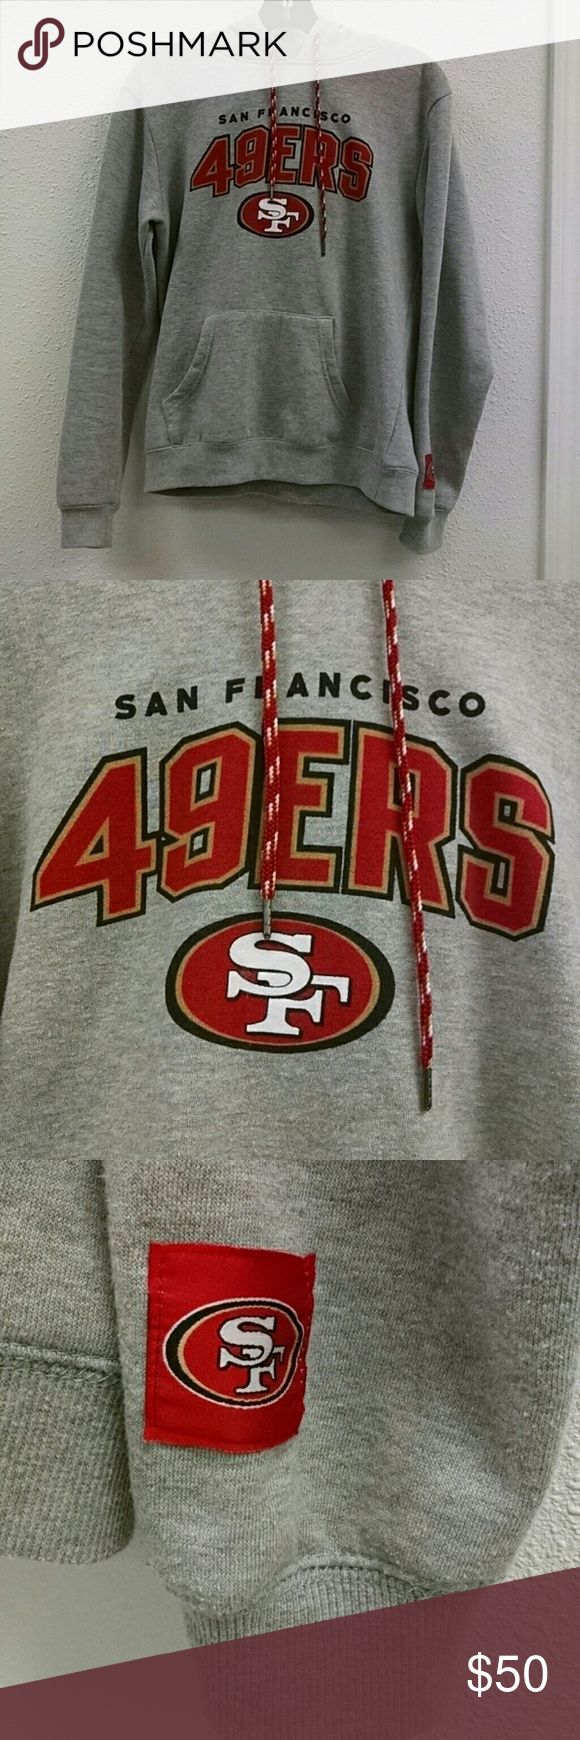 49ERS  NFL Gear Sweatshirt mens hoodie small NFL Gear 49ERS  men's hoodie sweatshirt size small. Hoodie is in excellent condition and football season is only a month away. Rep your team! NFL Gear Shirts Sweatshirts & Hoodies